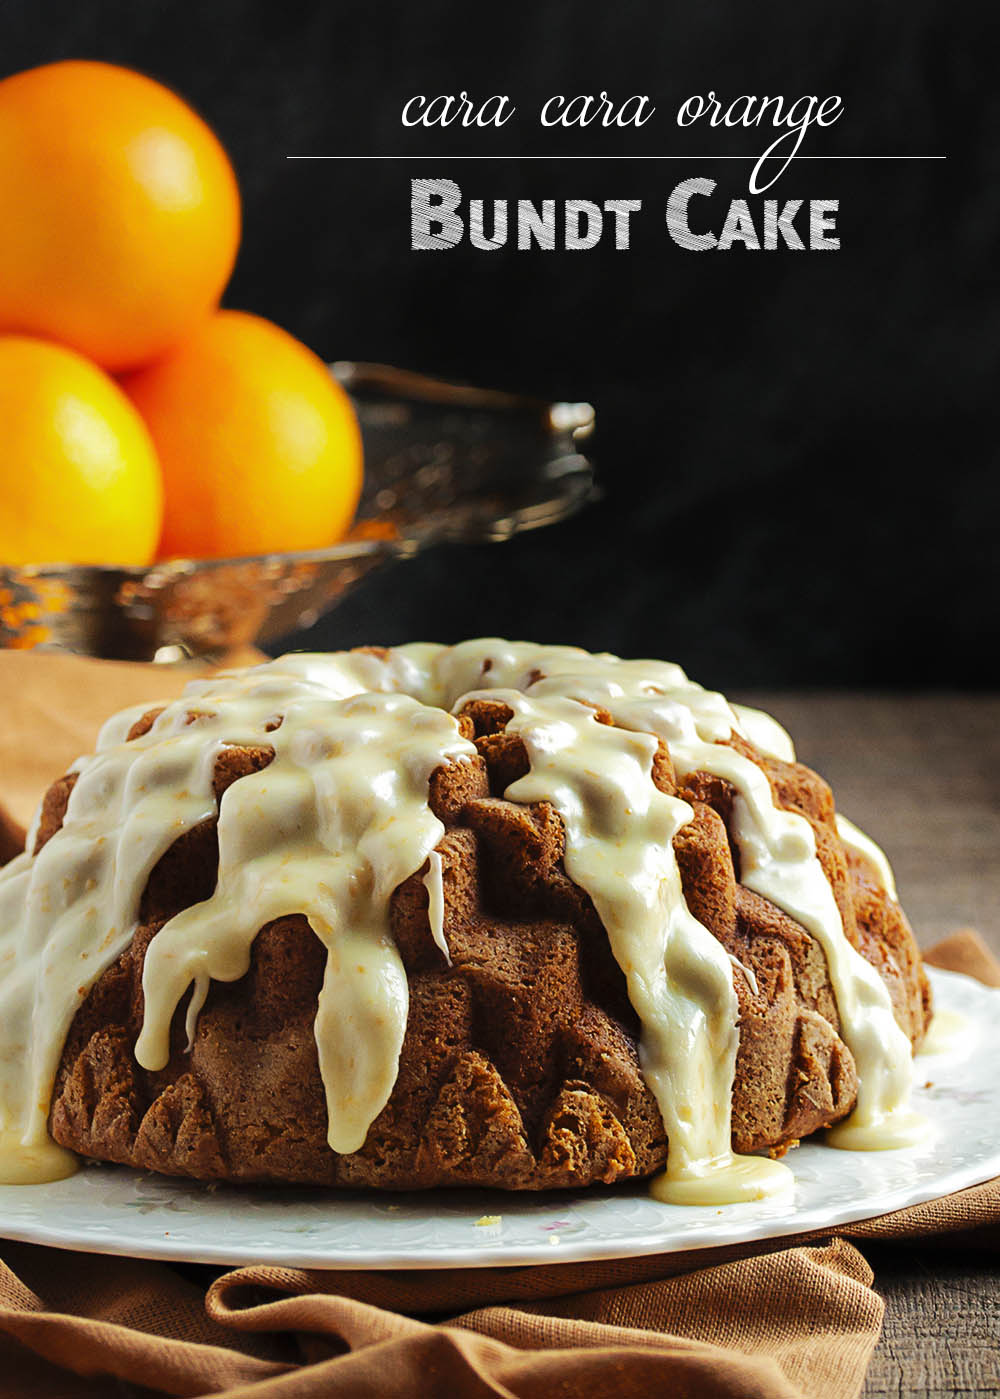 Cara Cara Orange Bundt Cake - This moist and rich bundt cake has a fine crumb and loads of orange flavor! One taste, and no matter where you are or what the season, it's summer again. | justalittlebitofbacon.com